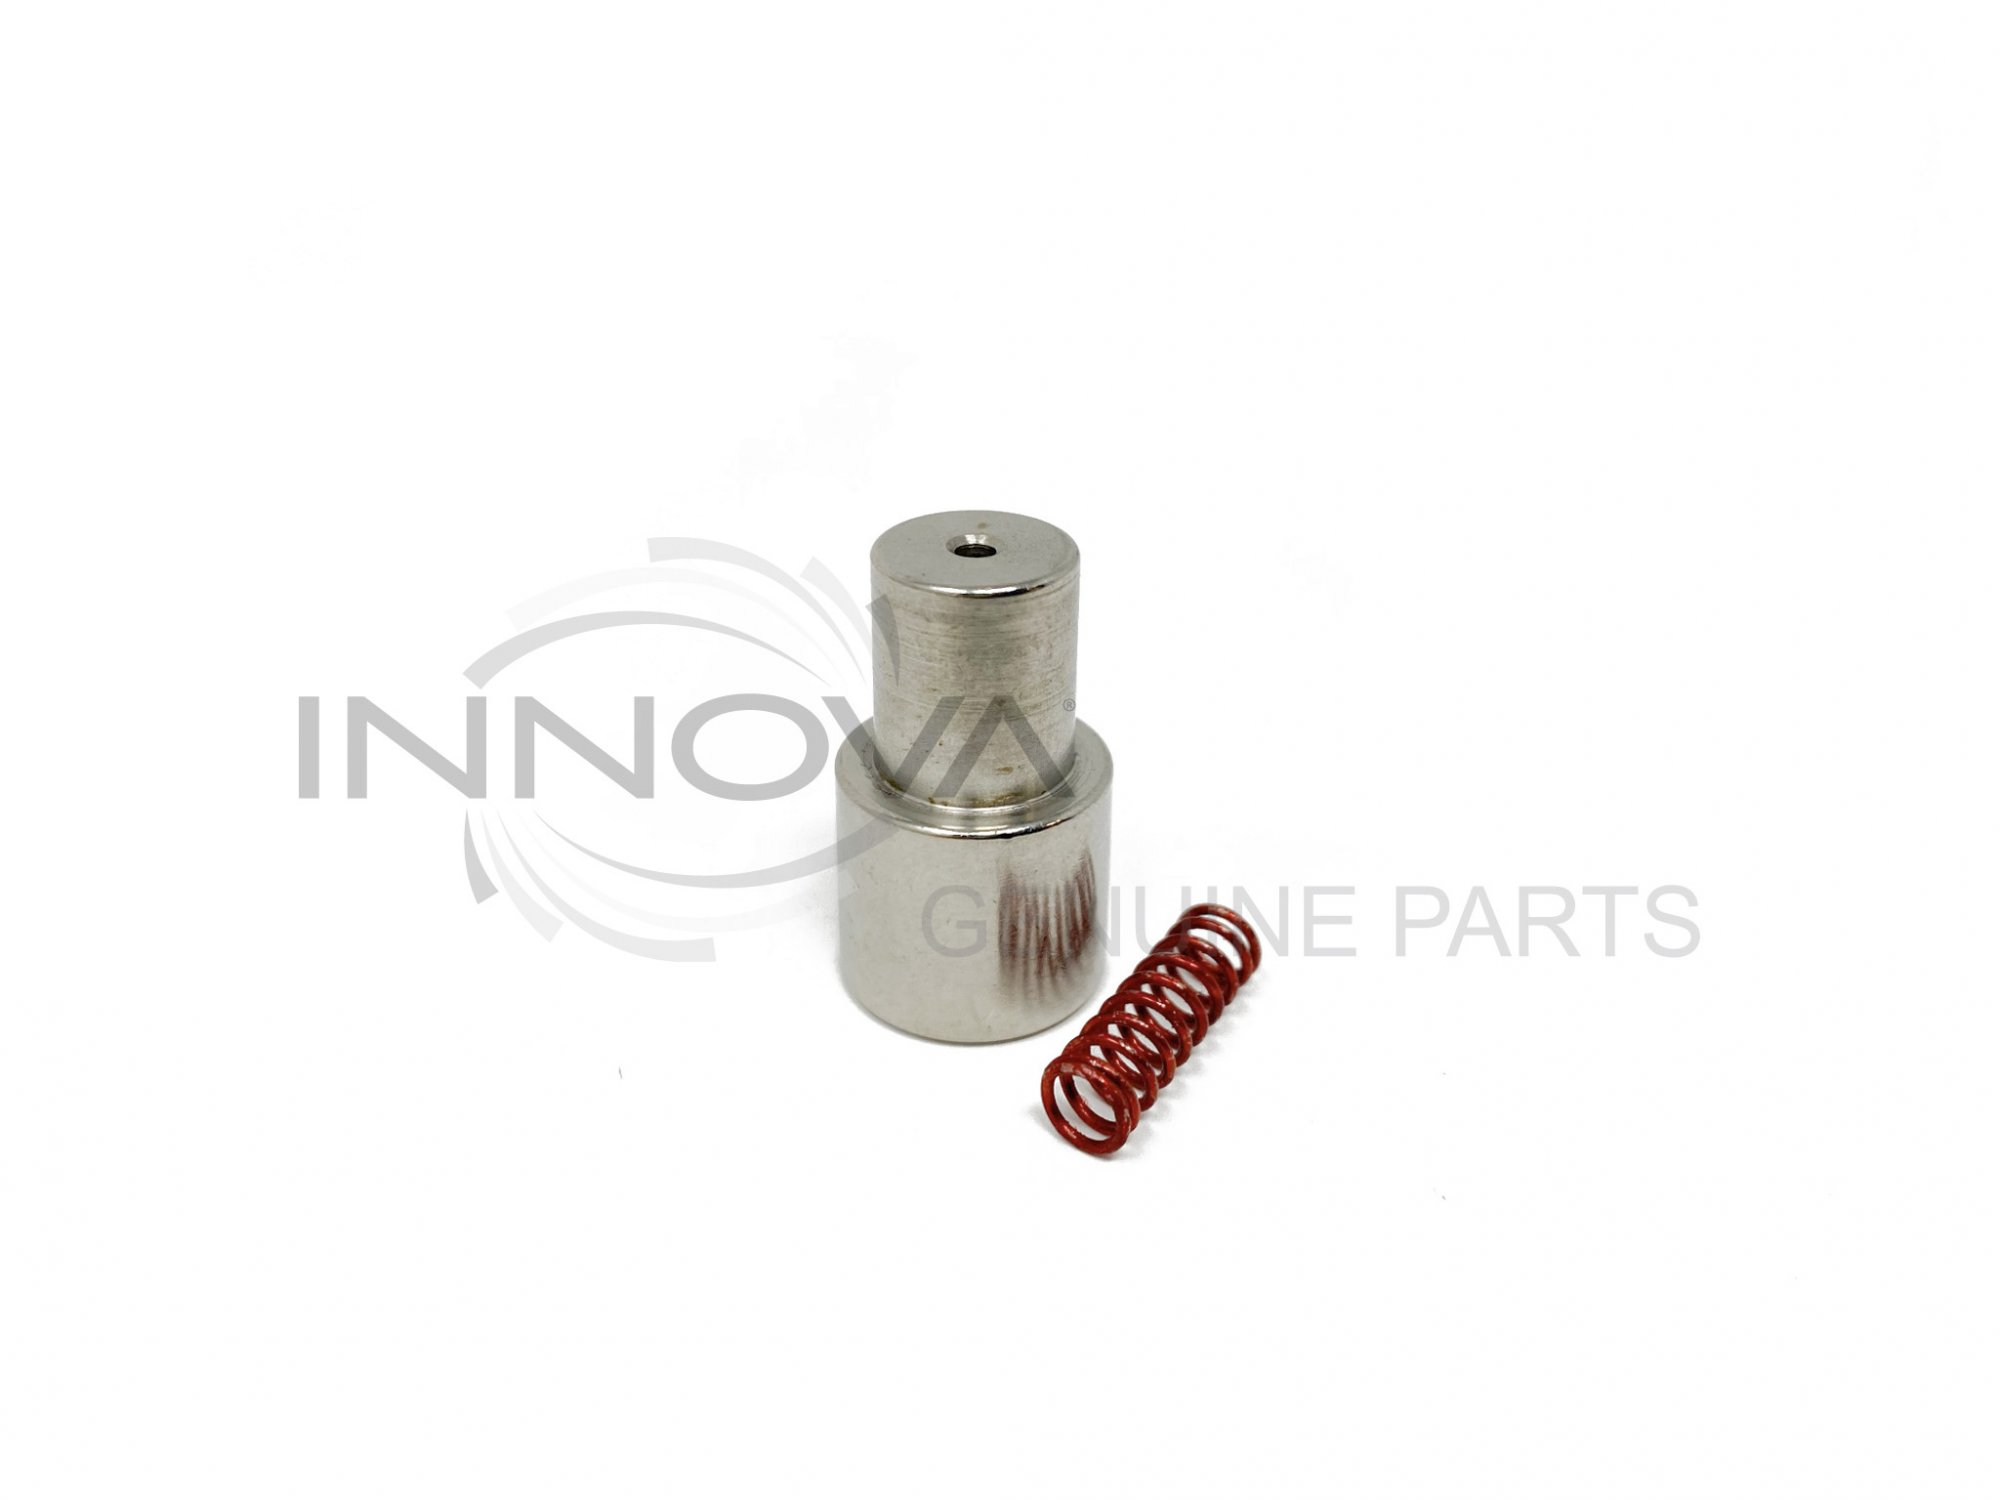 Steel Shank Adapter and Spring -Clear Plastic Feet